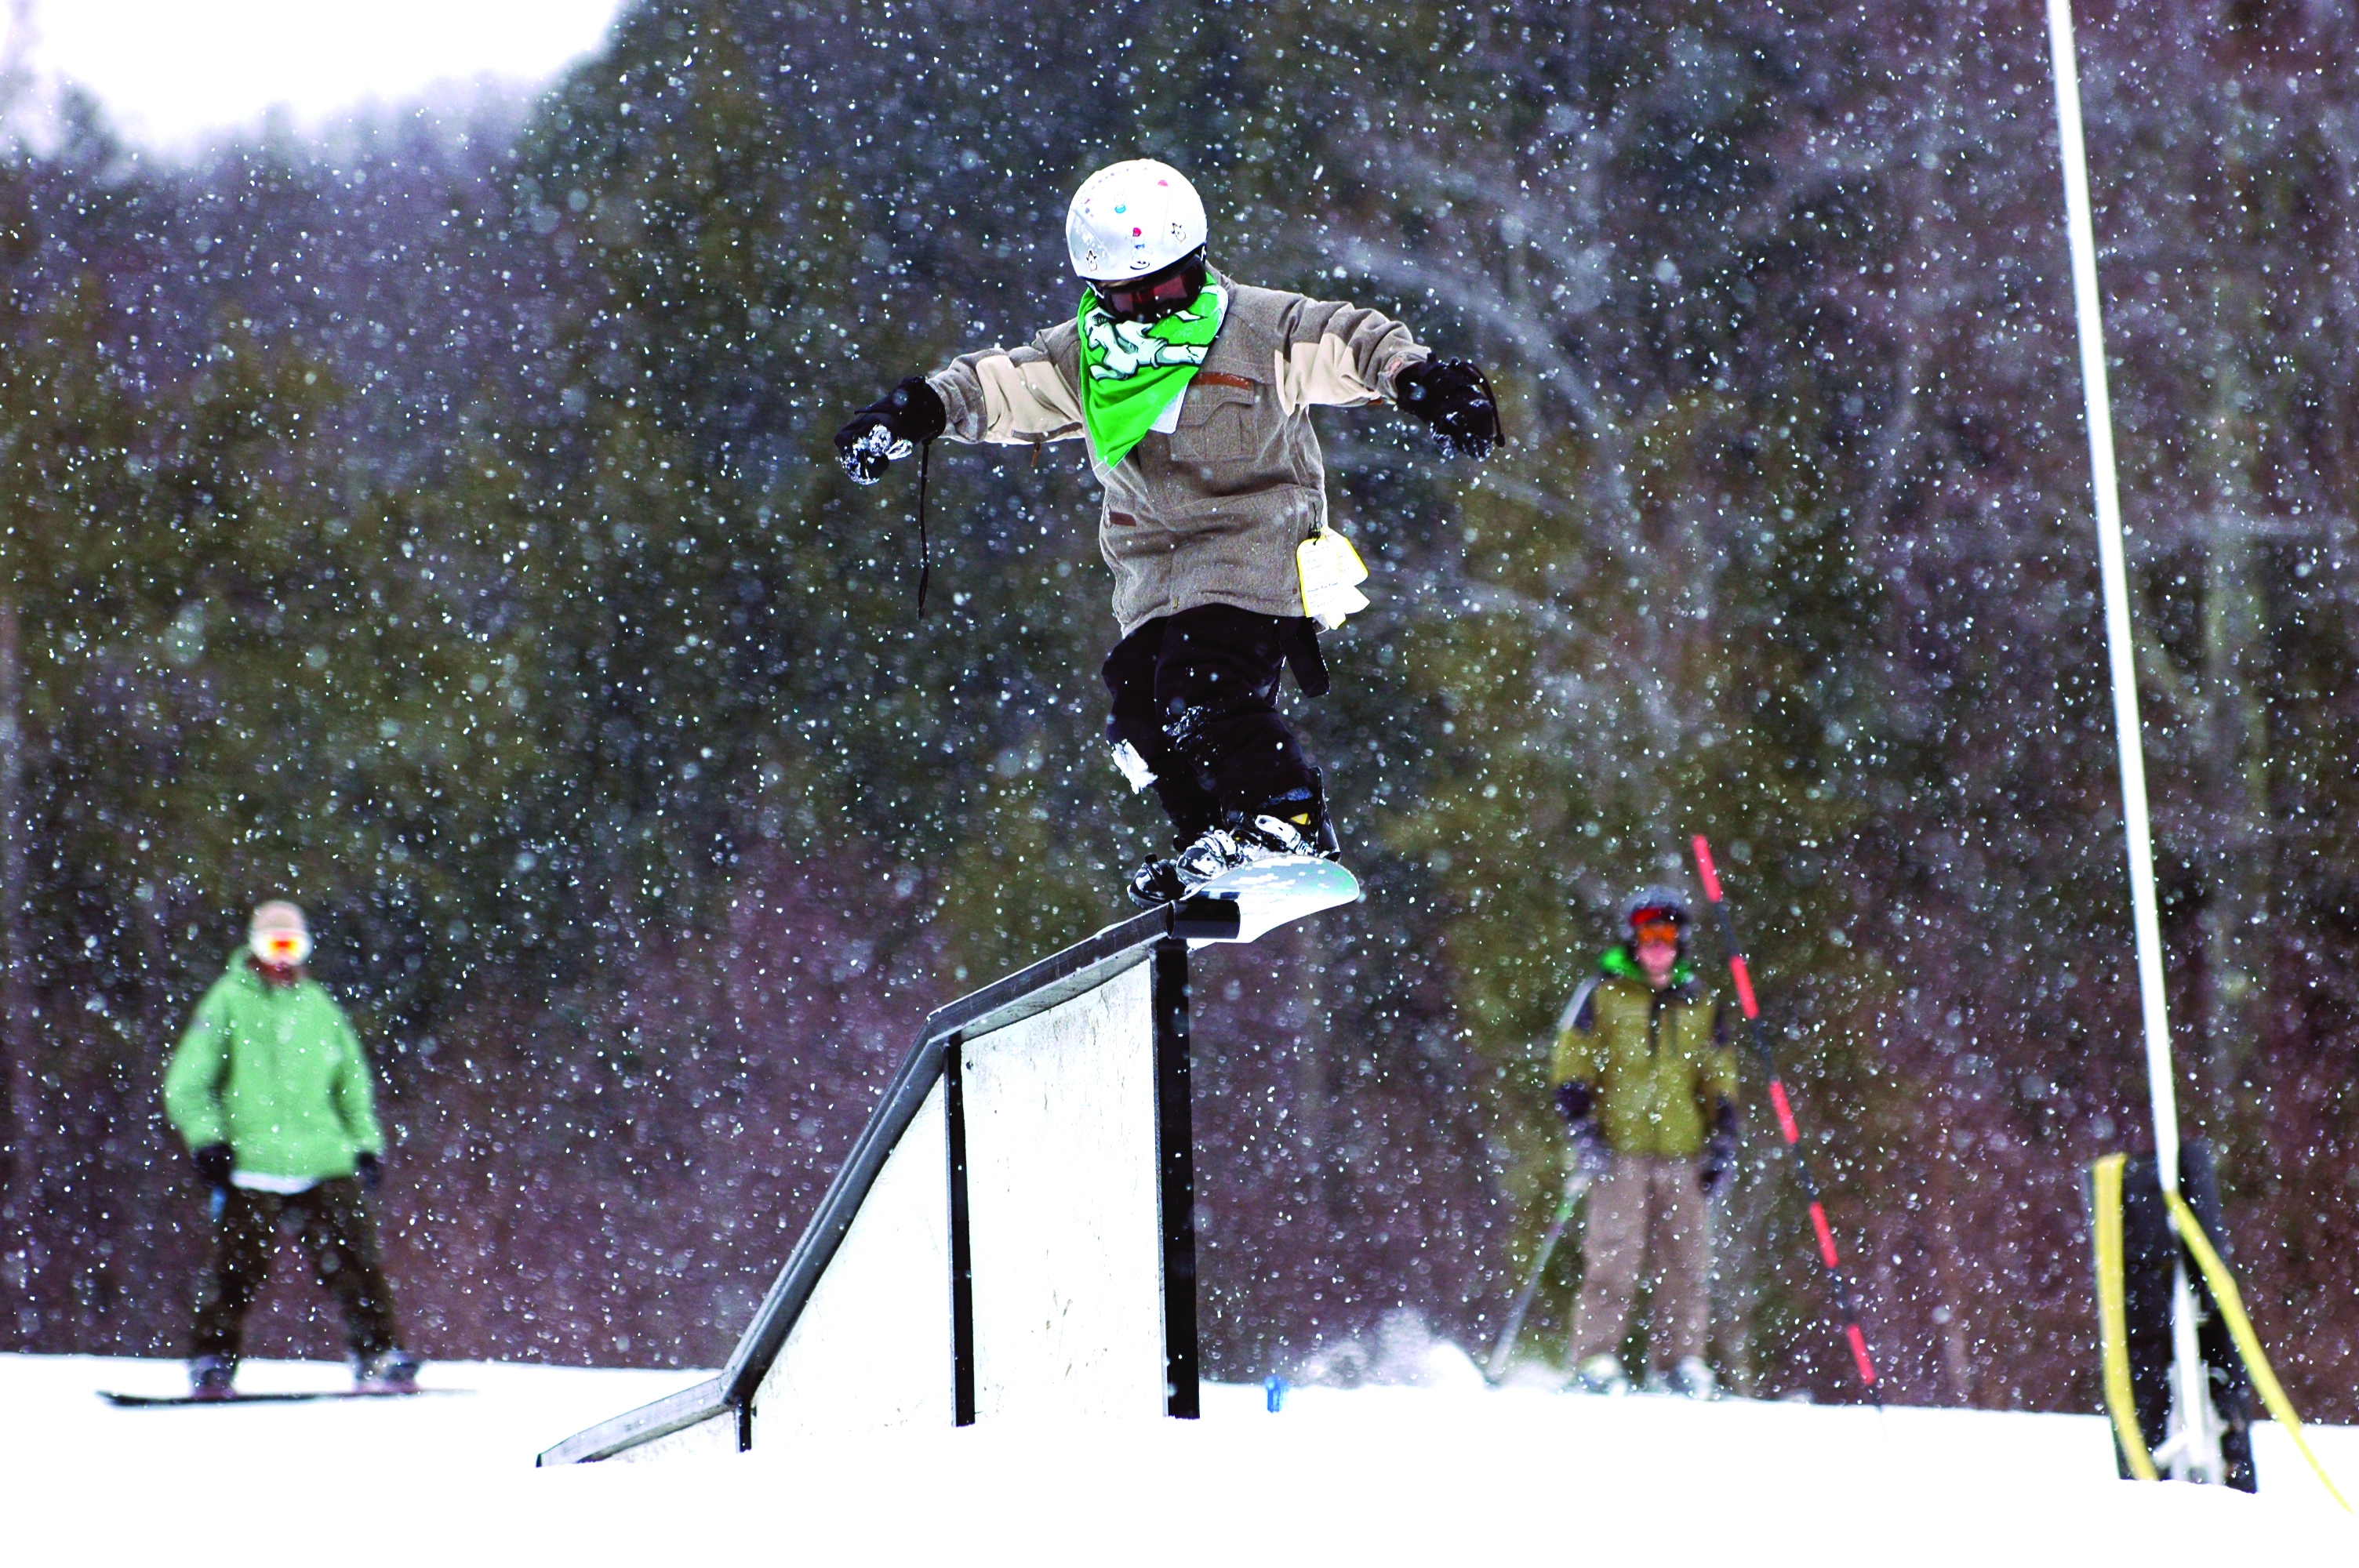 With the proper guidance, children as young as 5 can begin learning to snowboard.